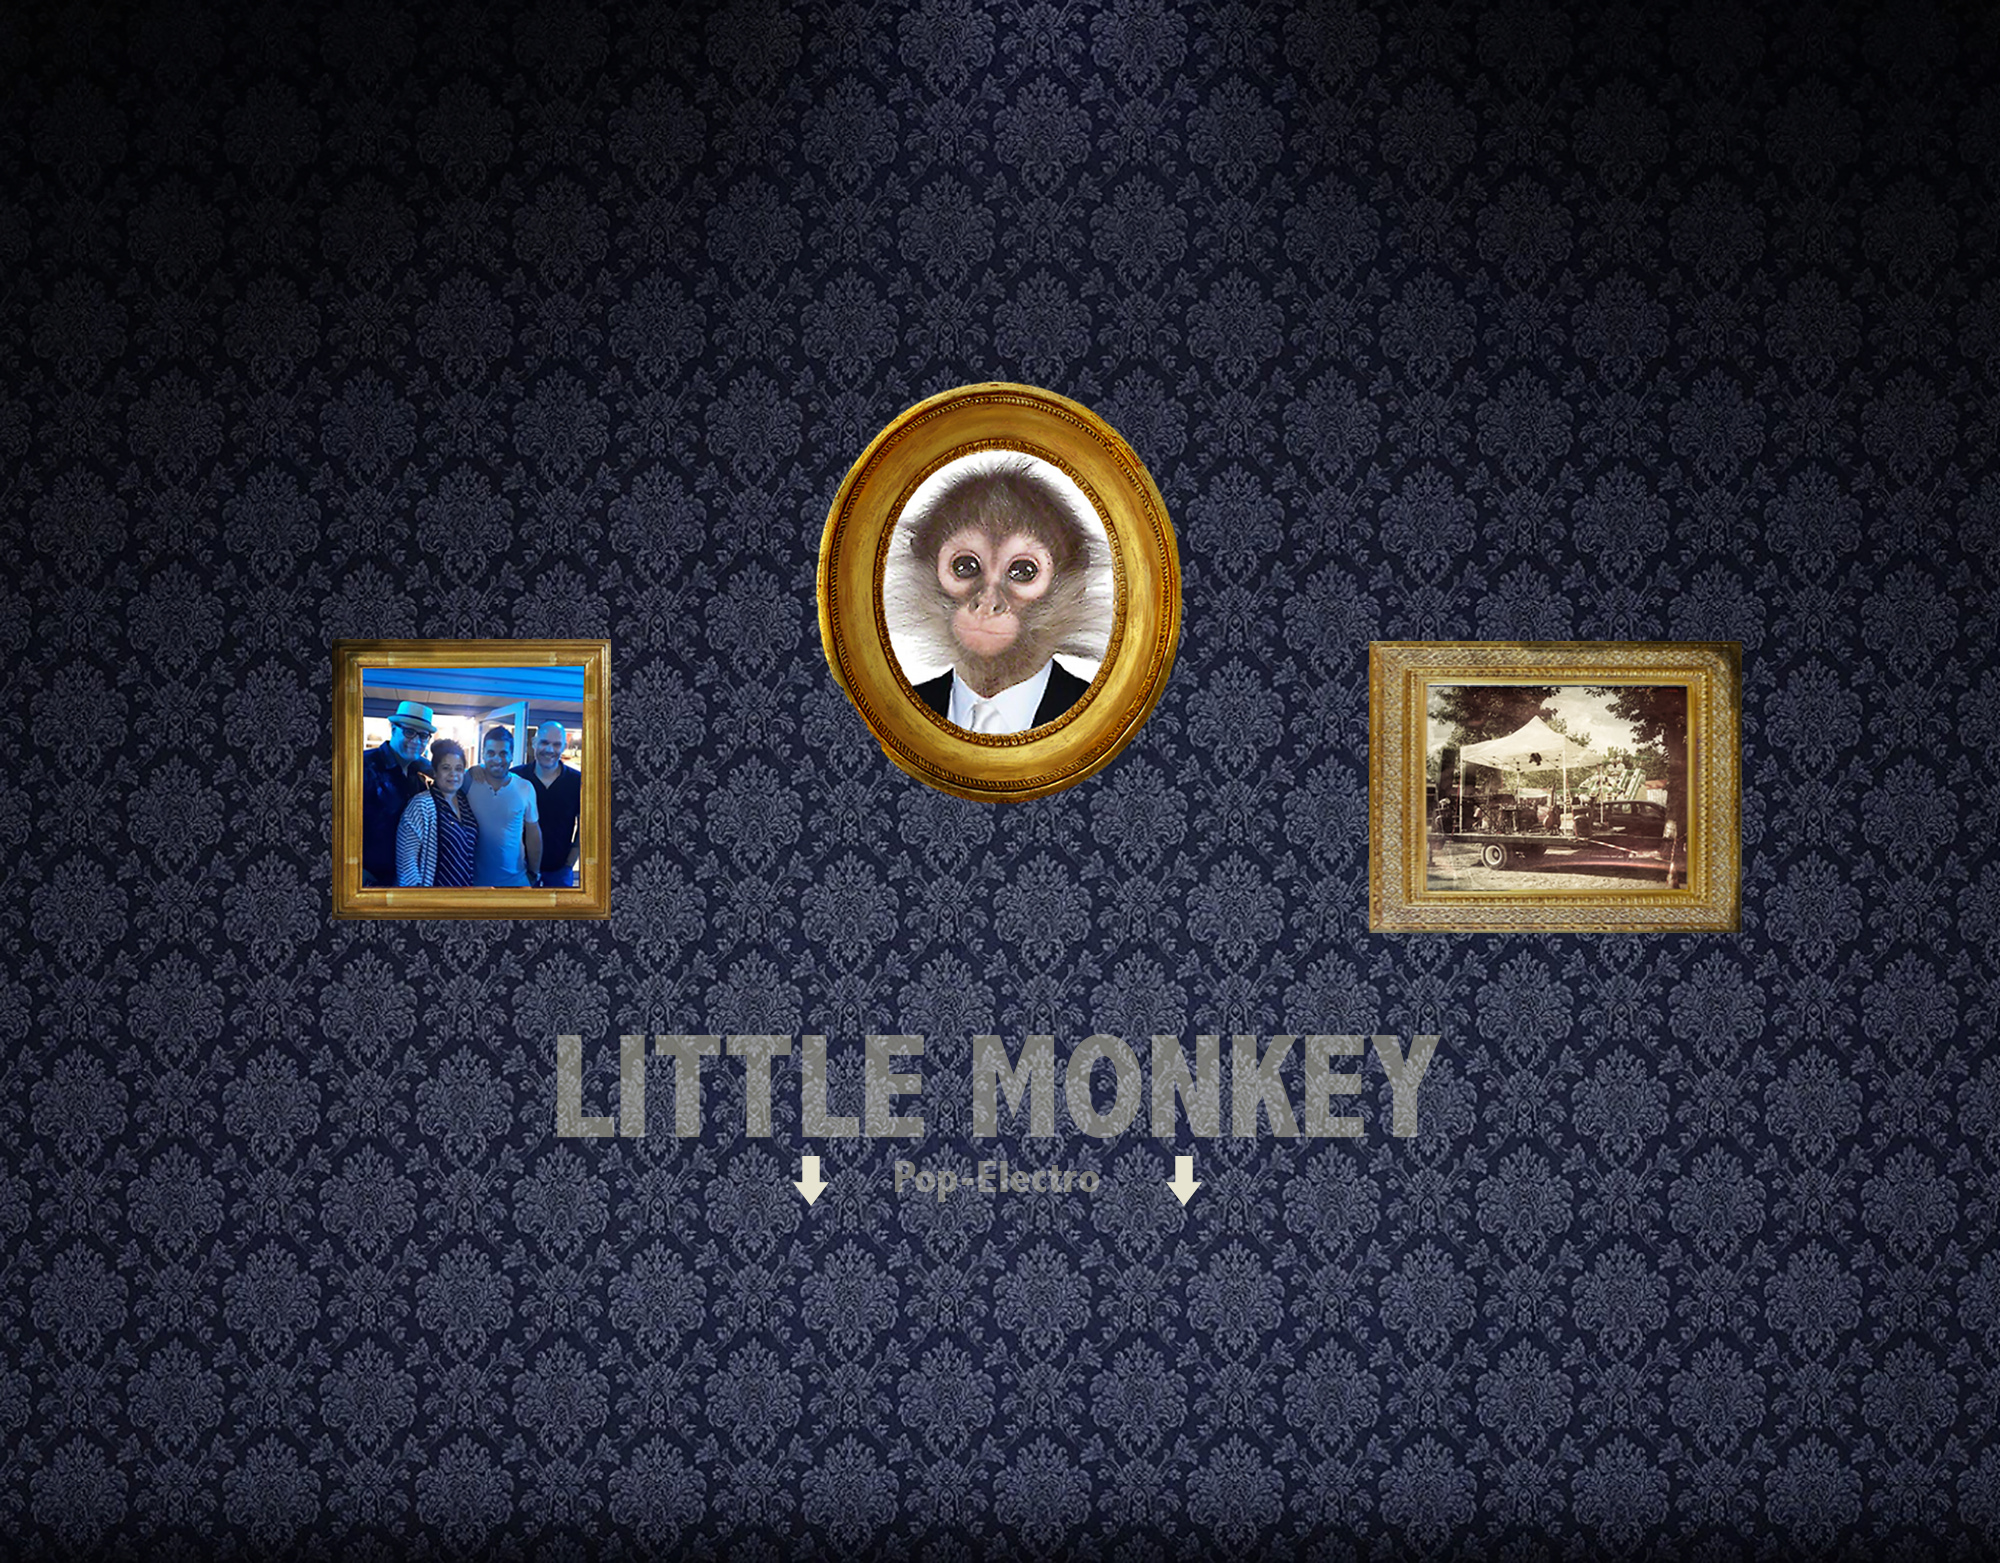 Little Monkey official